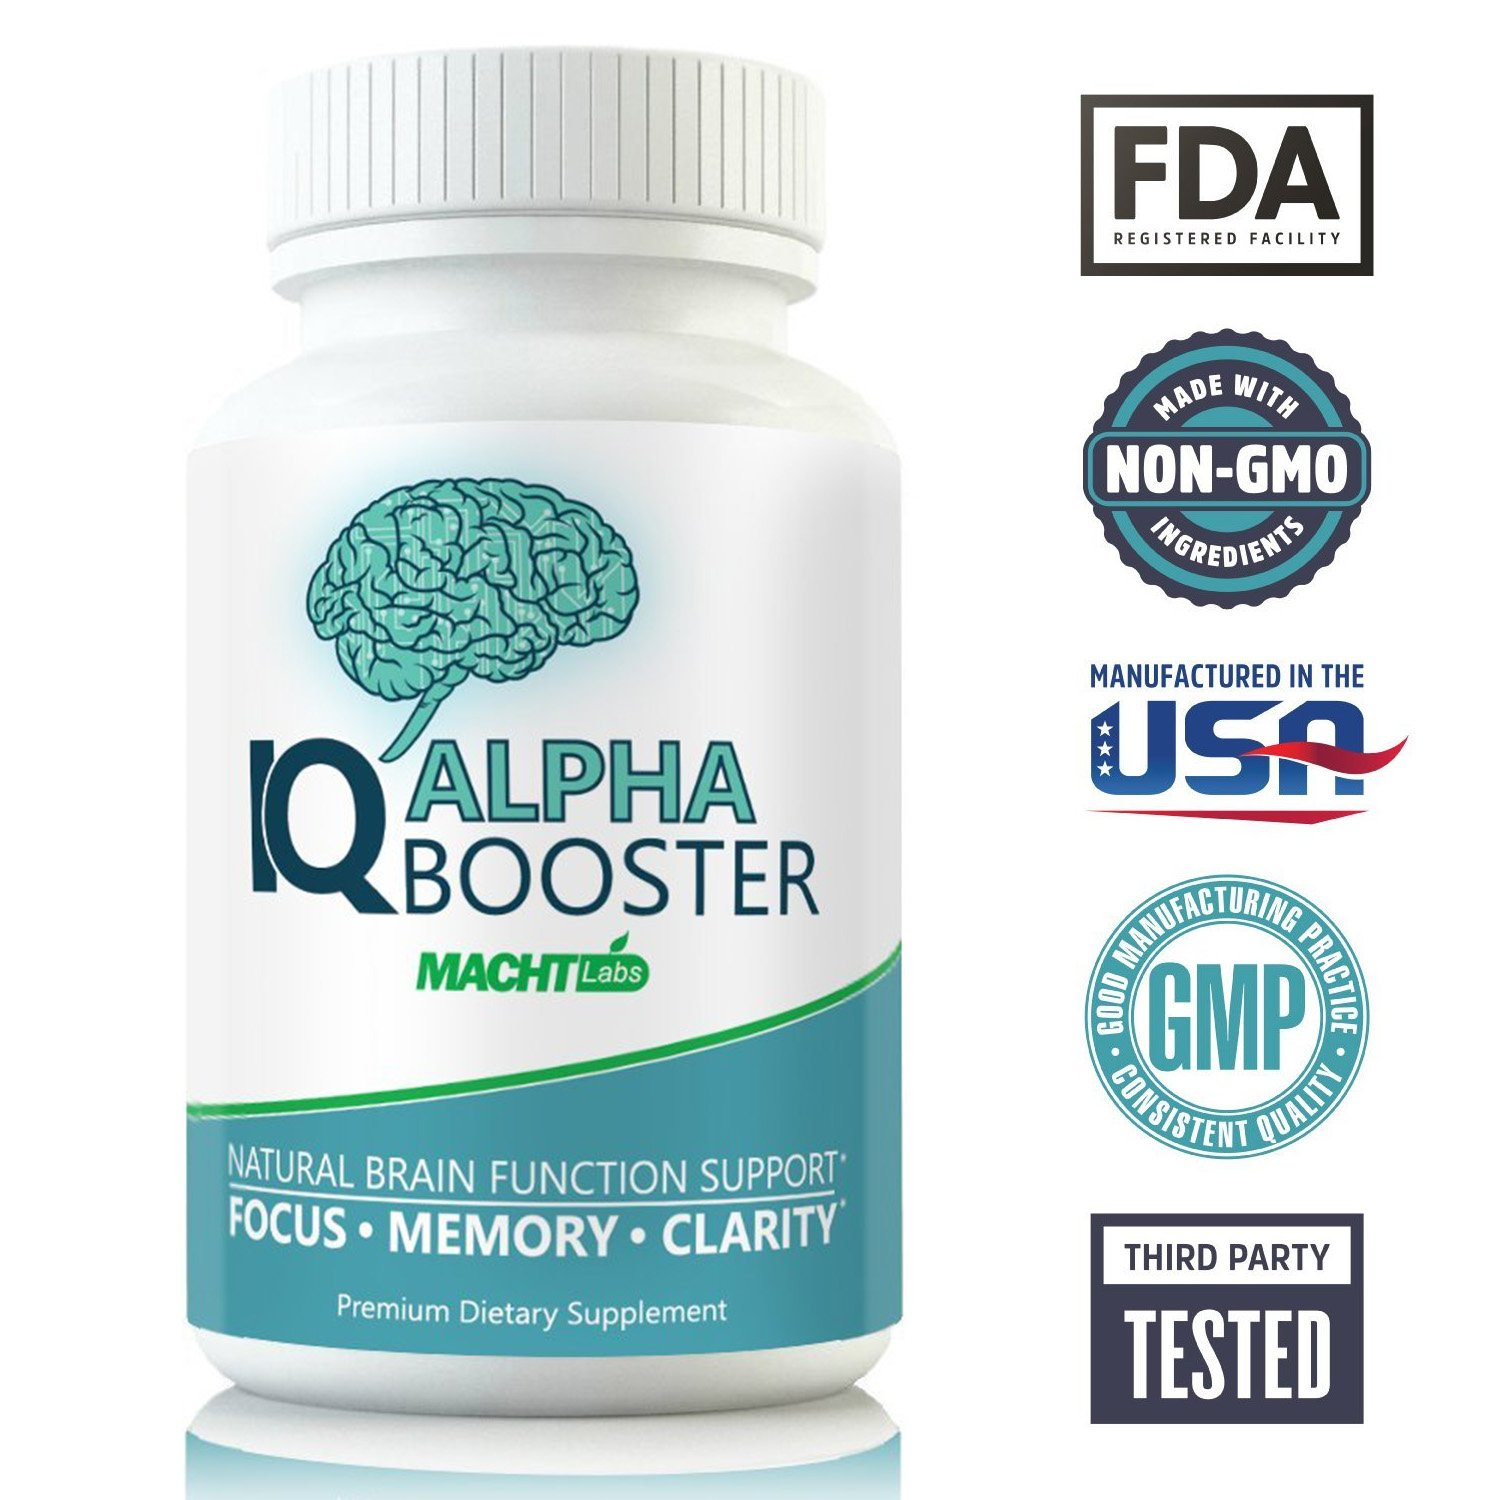 Neuroenhancer Brain Supplement for Memory, Focus & Clarity - Holistic Nootropic Stack for Brain Health and Memory Enhancement - DMAE, Bacopa, Ginkgo - IQ Alpha Brain Pill Supplements 60 Caps